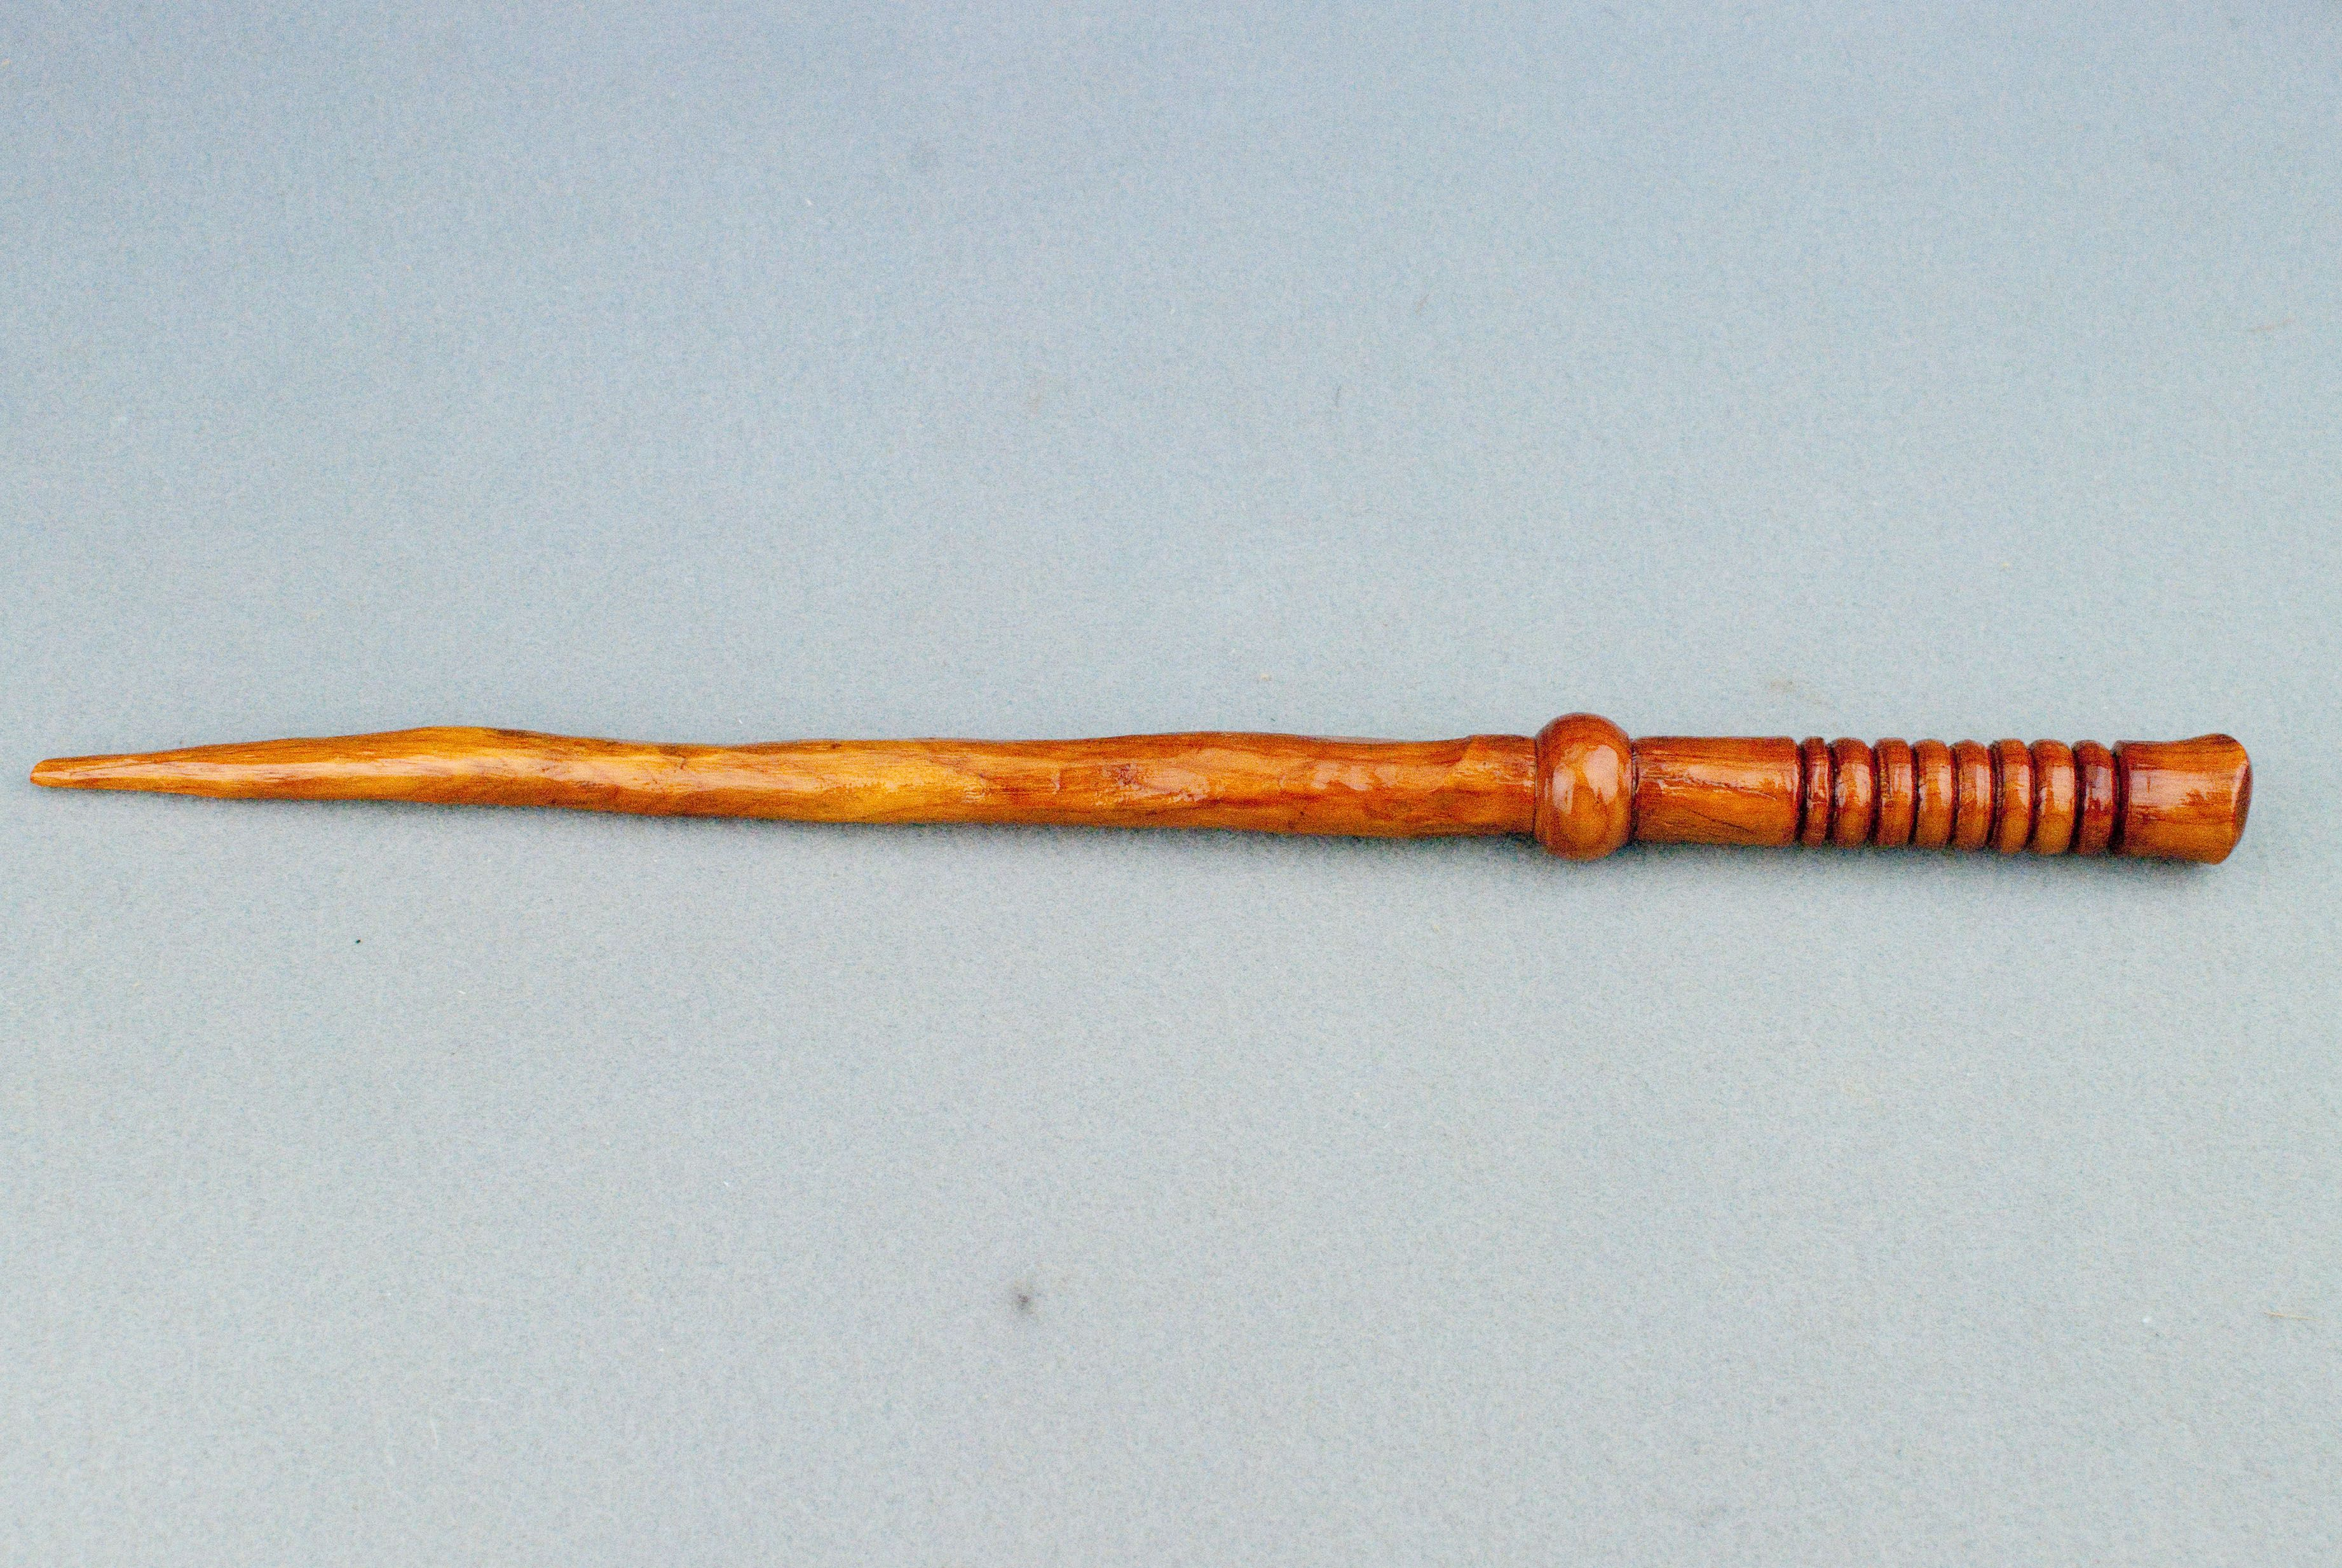 13 1/2 inch,Yew, Phoenix Feather  This custom made wooden magic